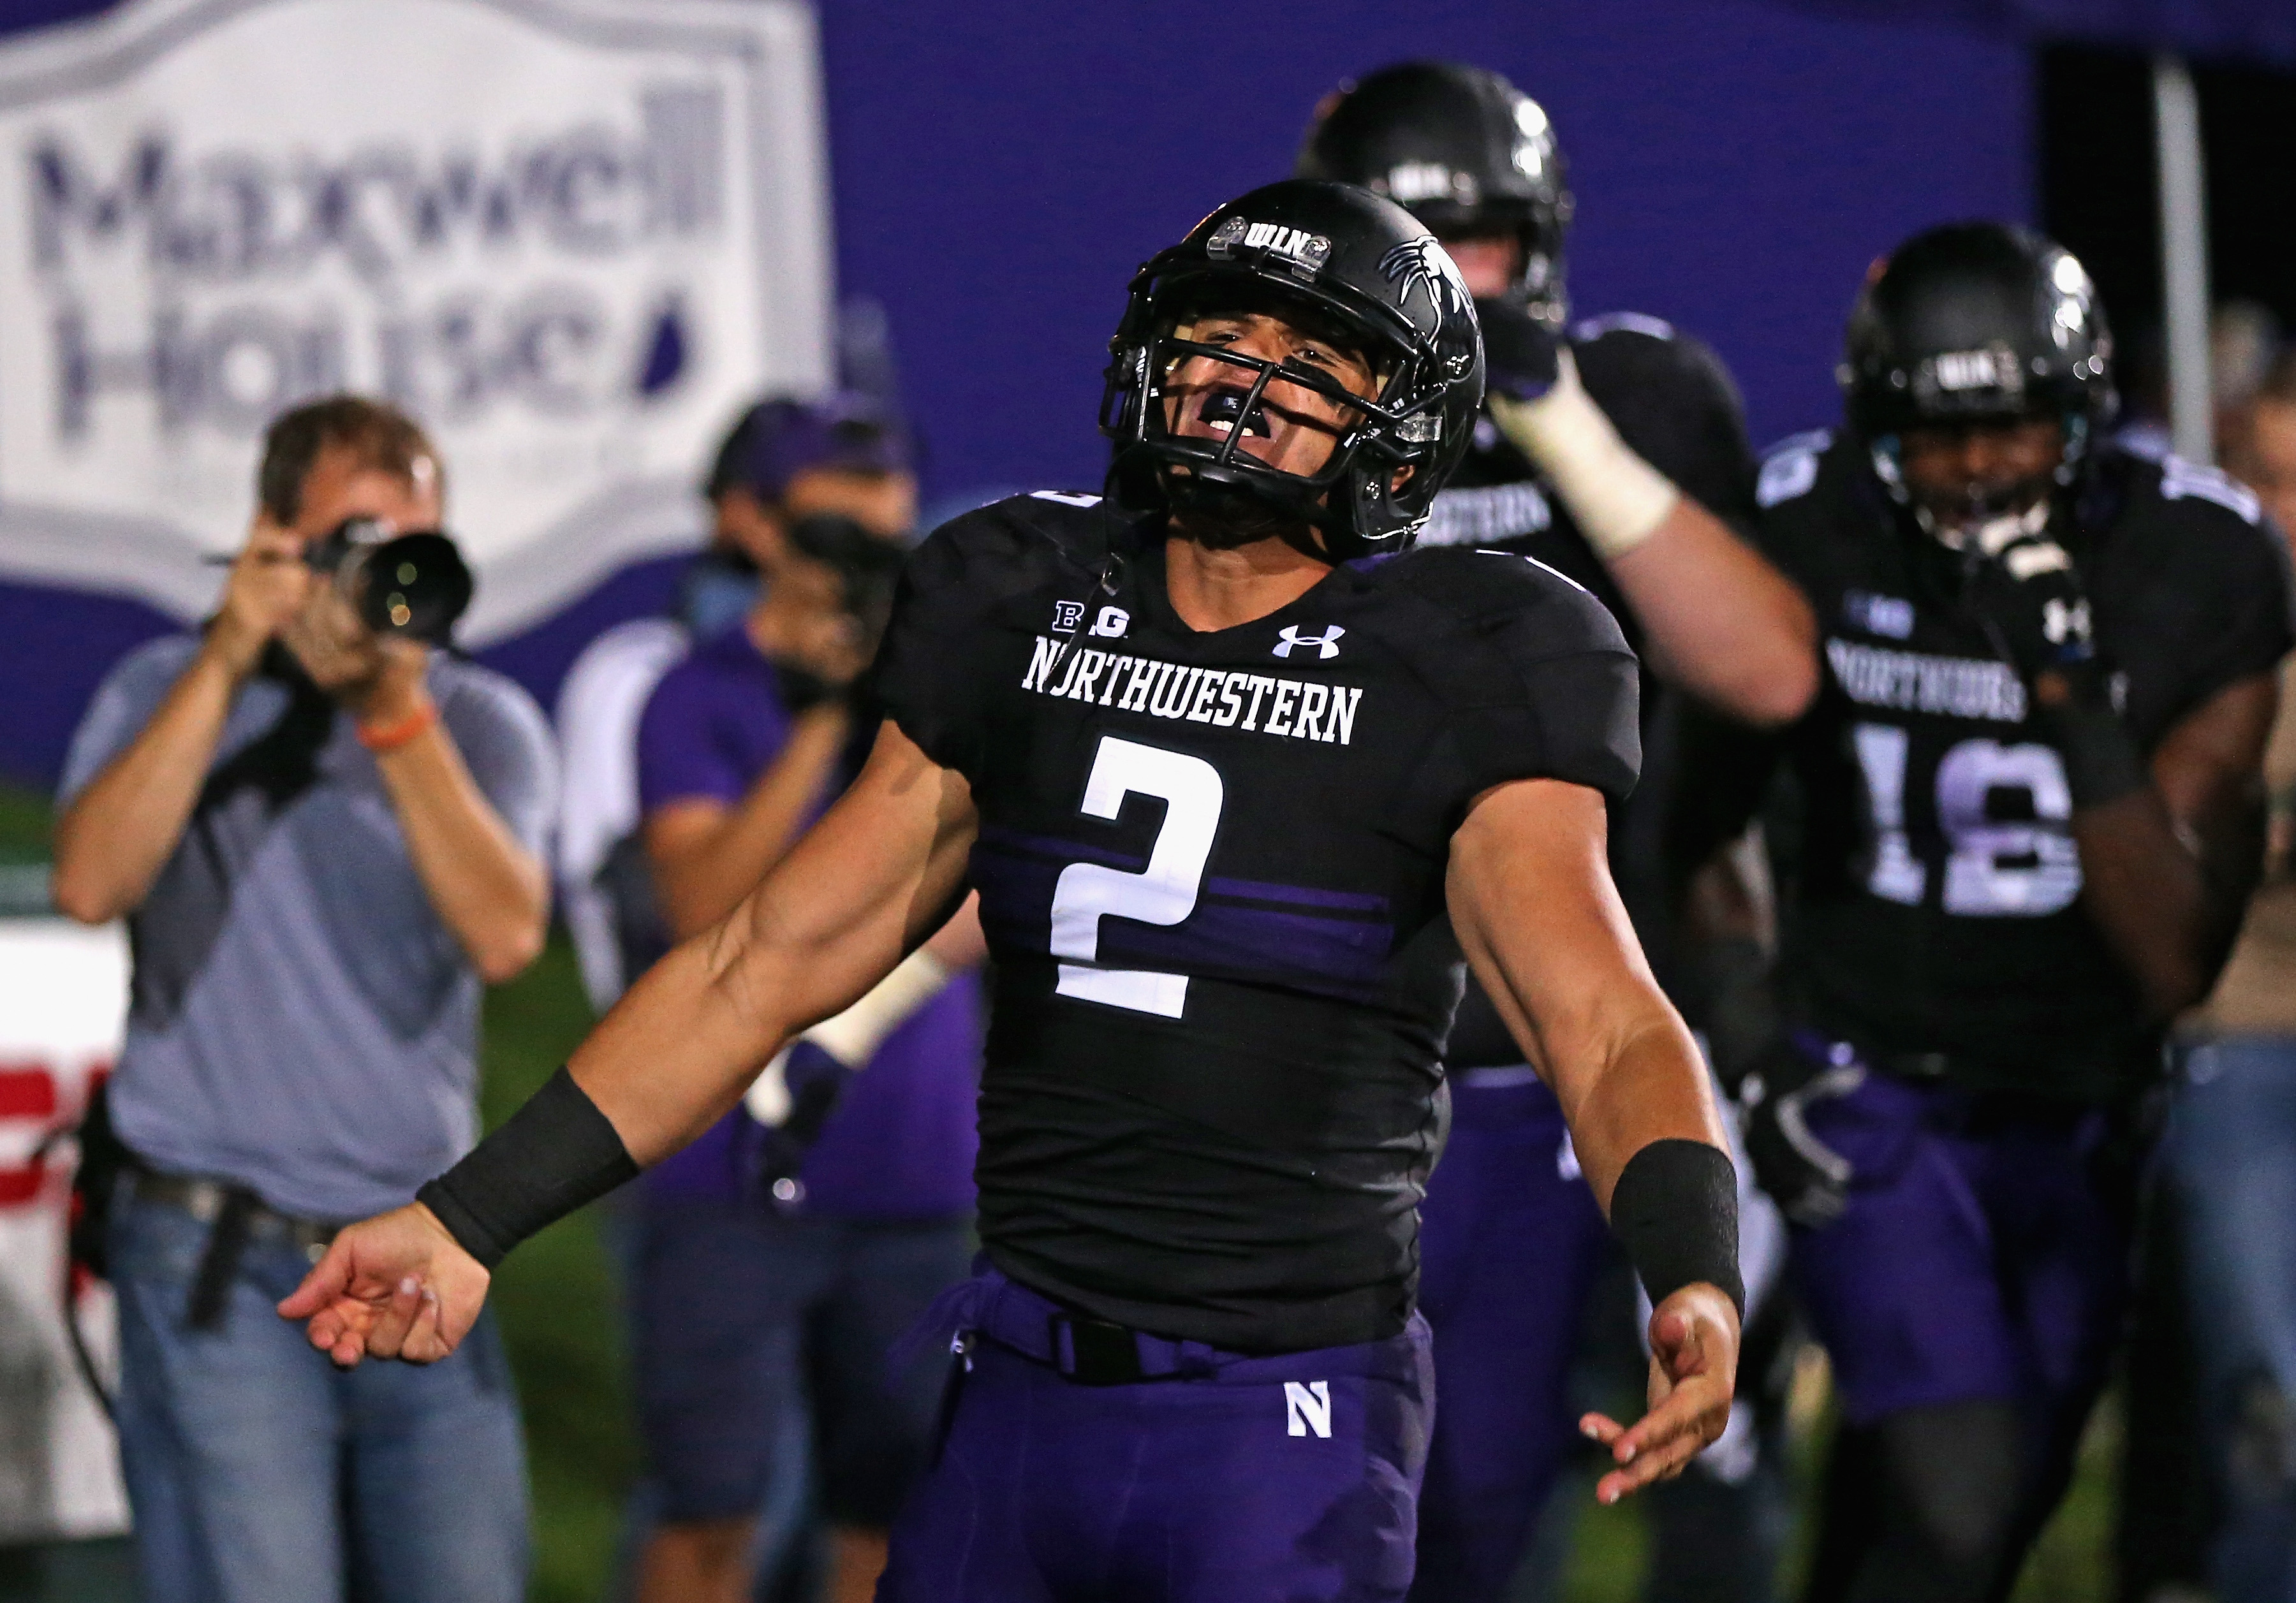 EVANSTON, IL - OCTOBER 05:  Kain Colter #2 of the Northwestern Wildcats celebrates a touchdown catch against the Ohio State Buckeyes at Ryan Field on October 5, 2013 in Evanston, Illinois. Ohio State defeated Northwestern 40-30.  (Photo by Jonathan Daniel/Getty Images)